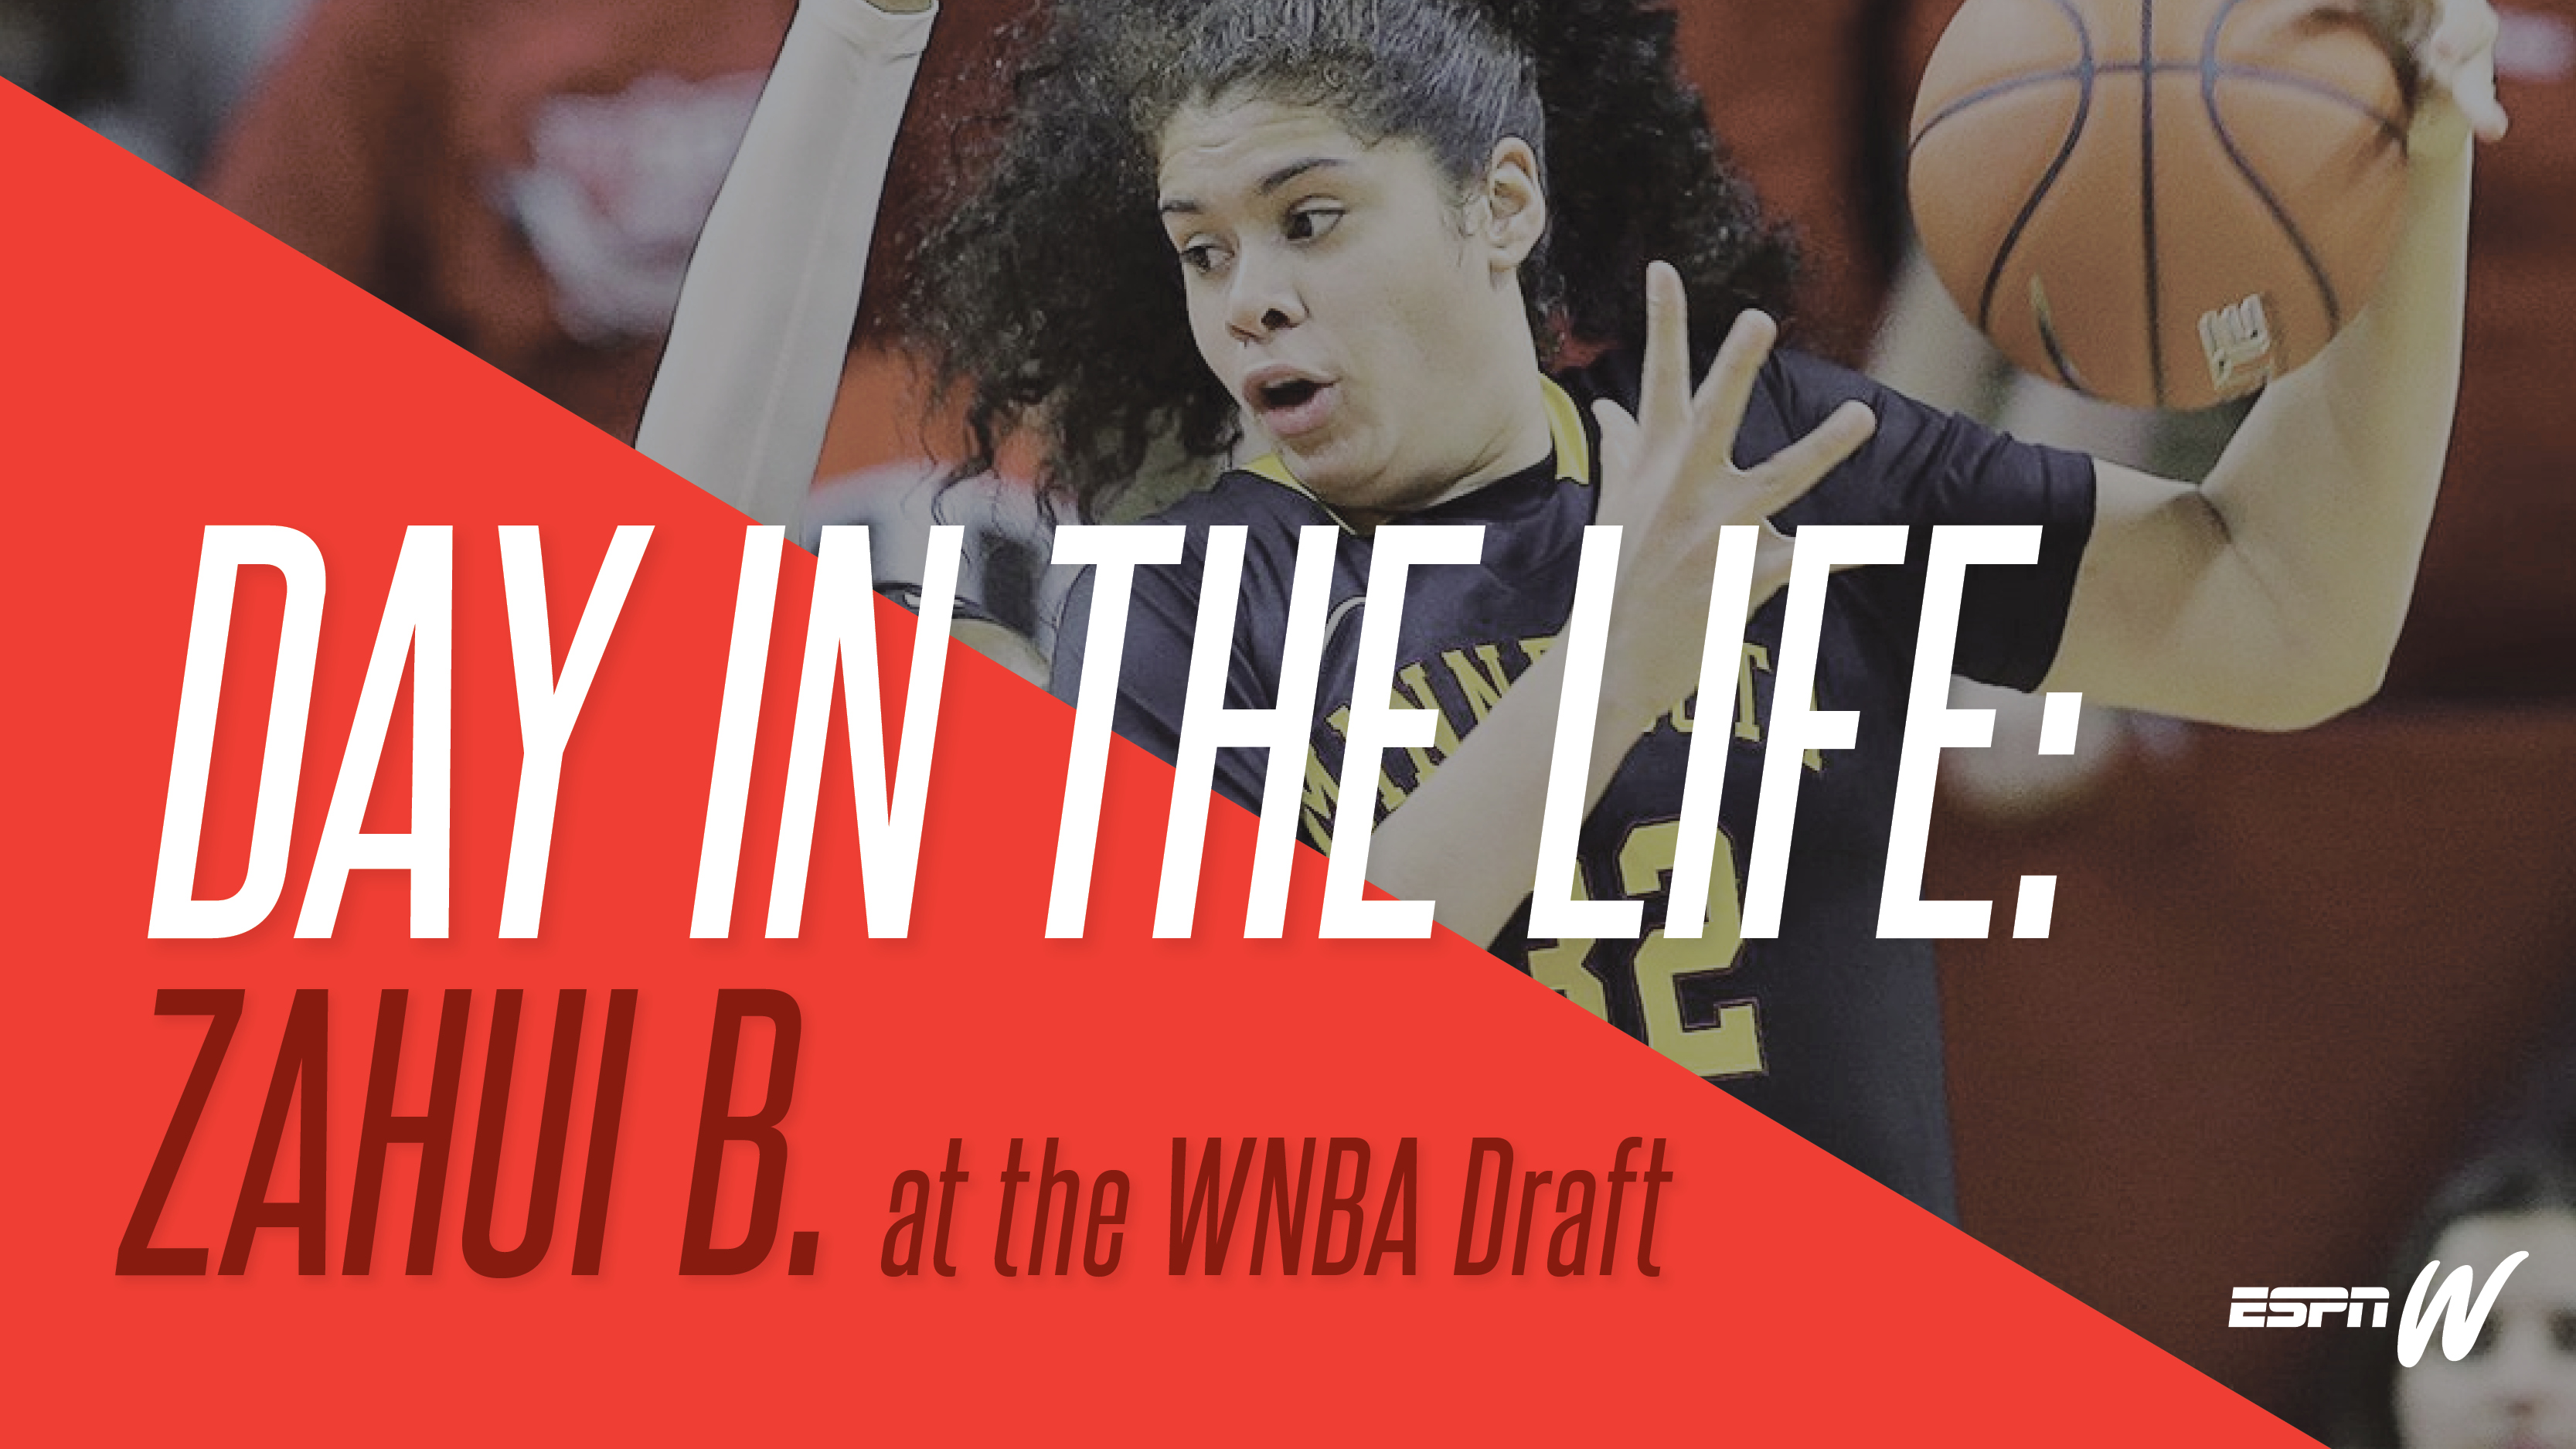 WNBA Draft Day: Day In The Life